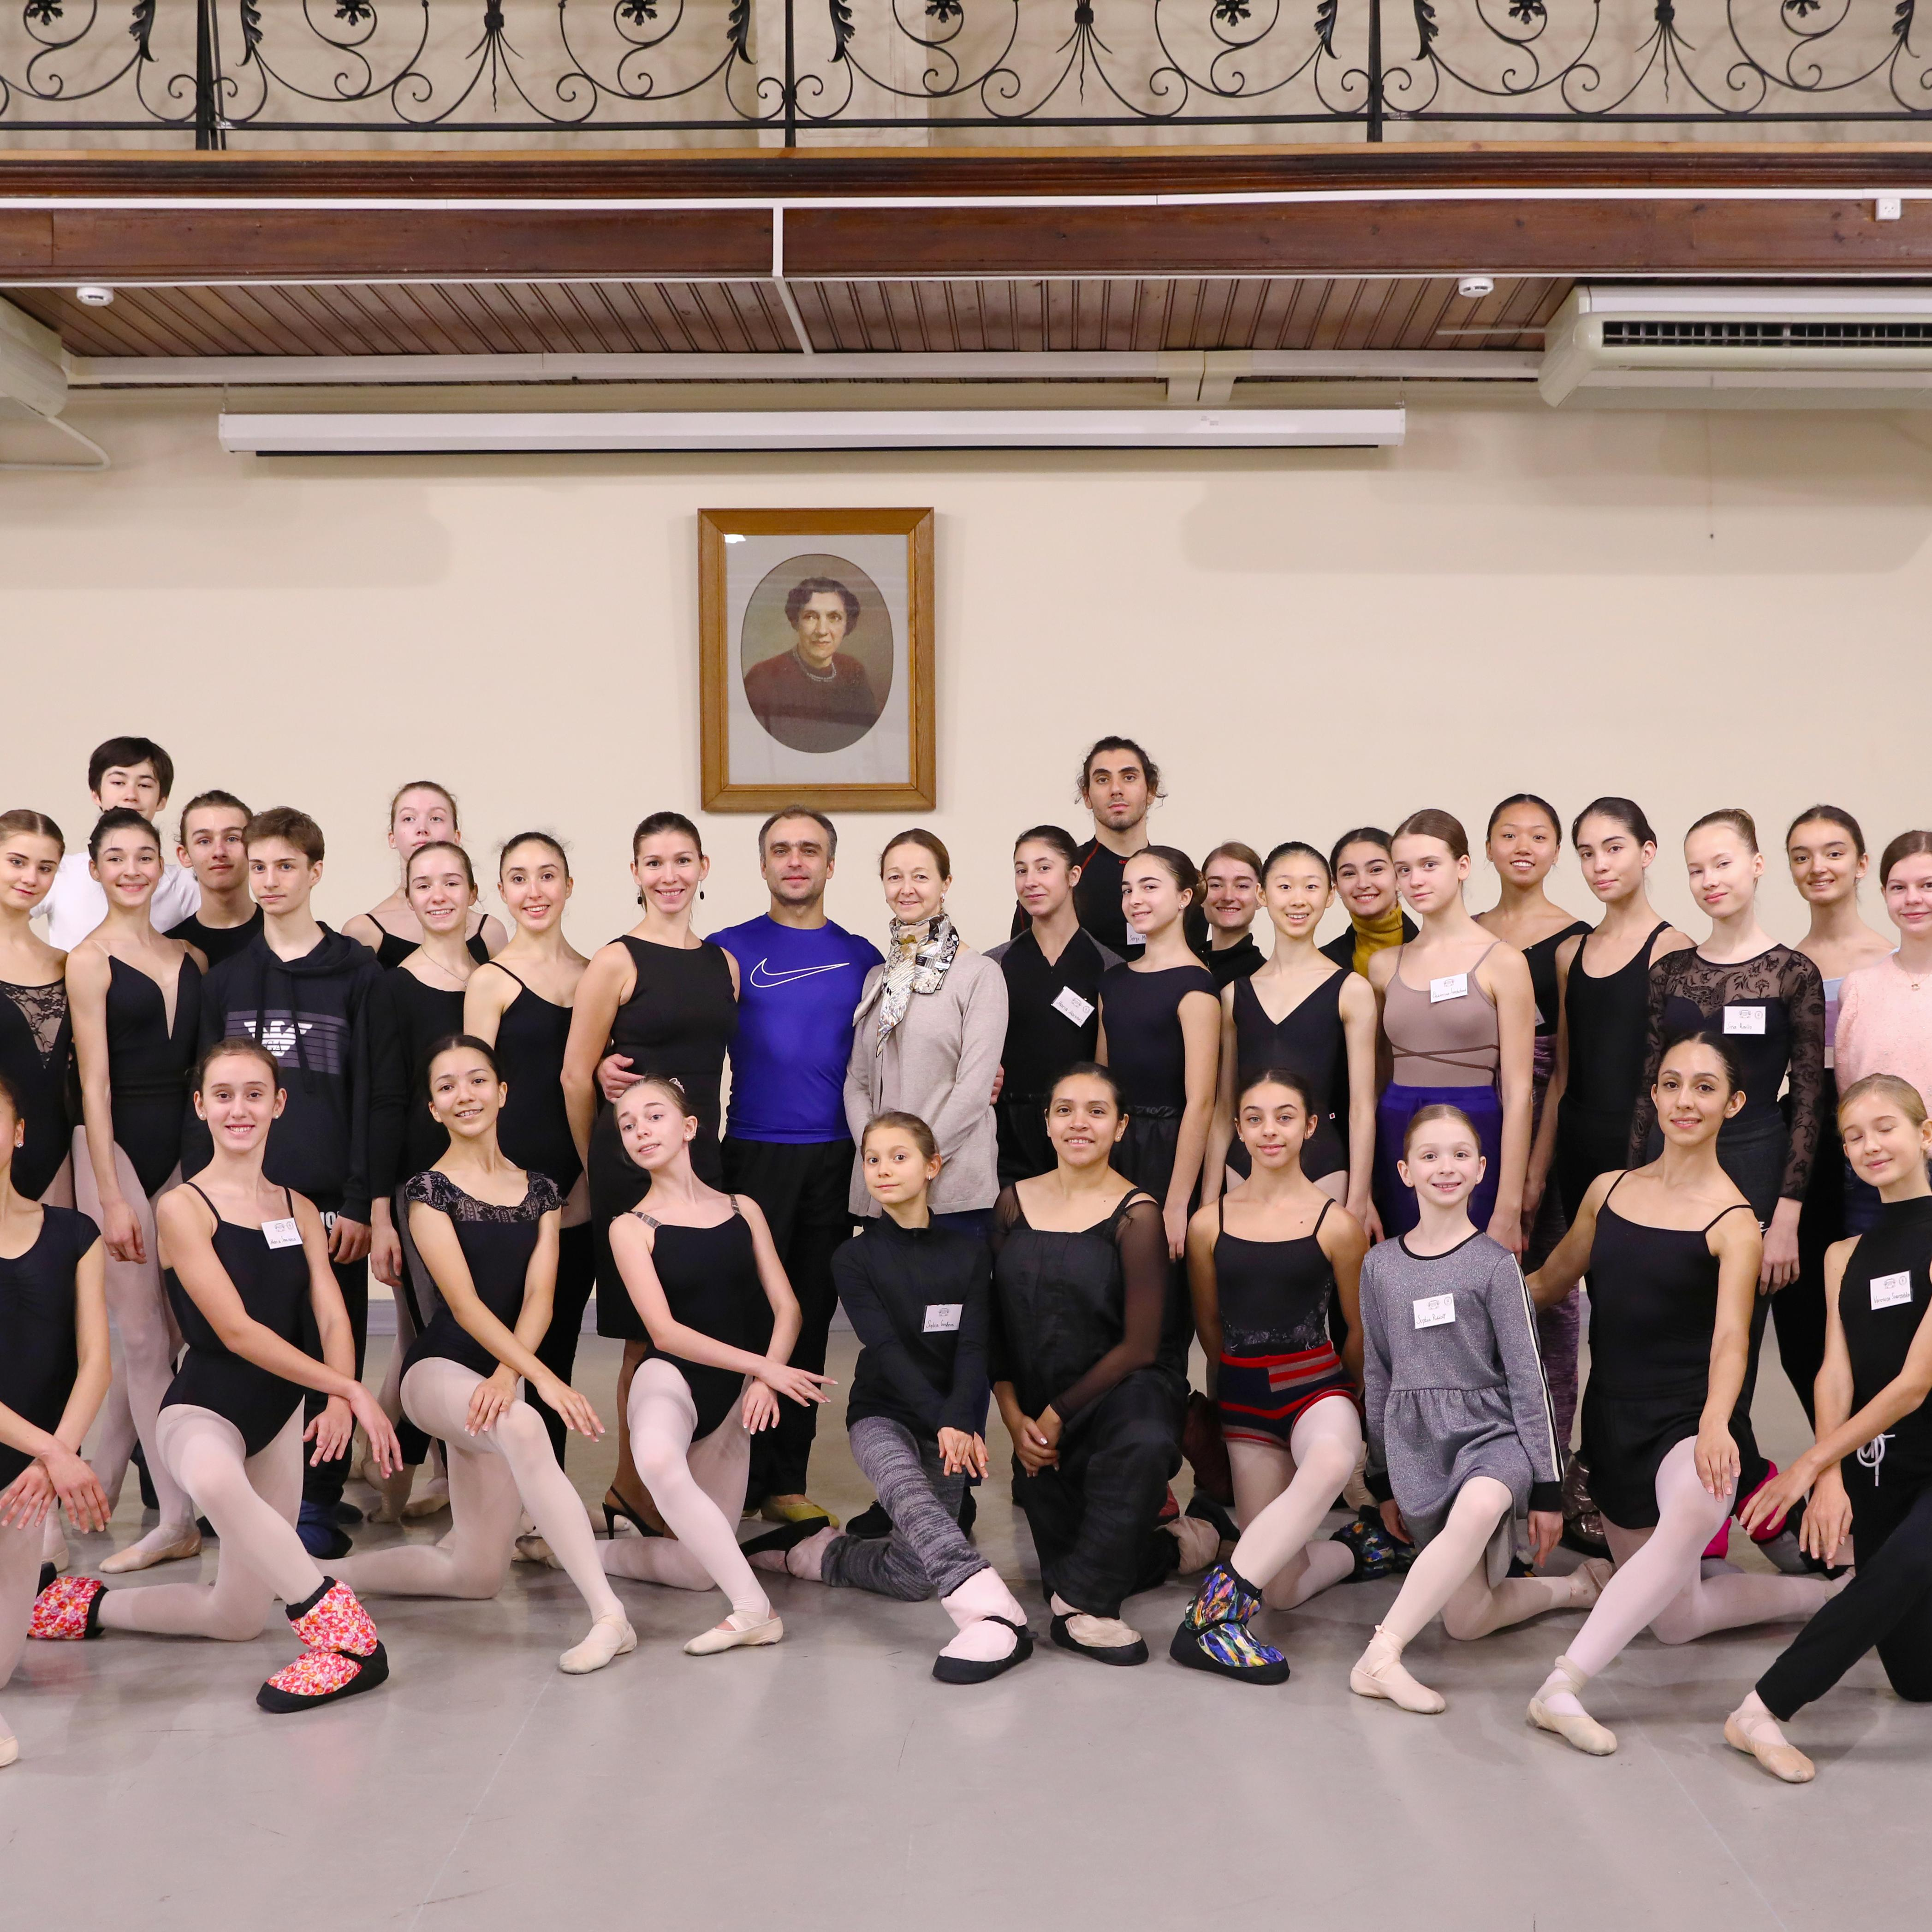 Meeting with ballet stars